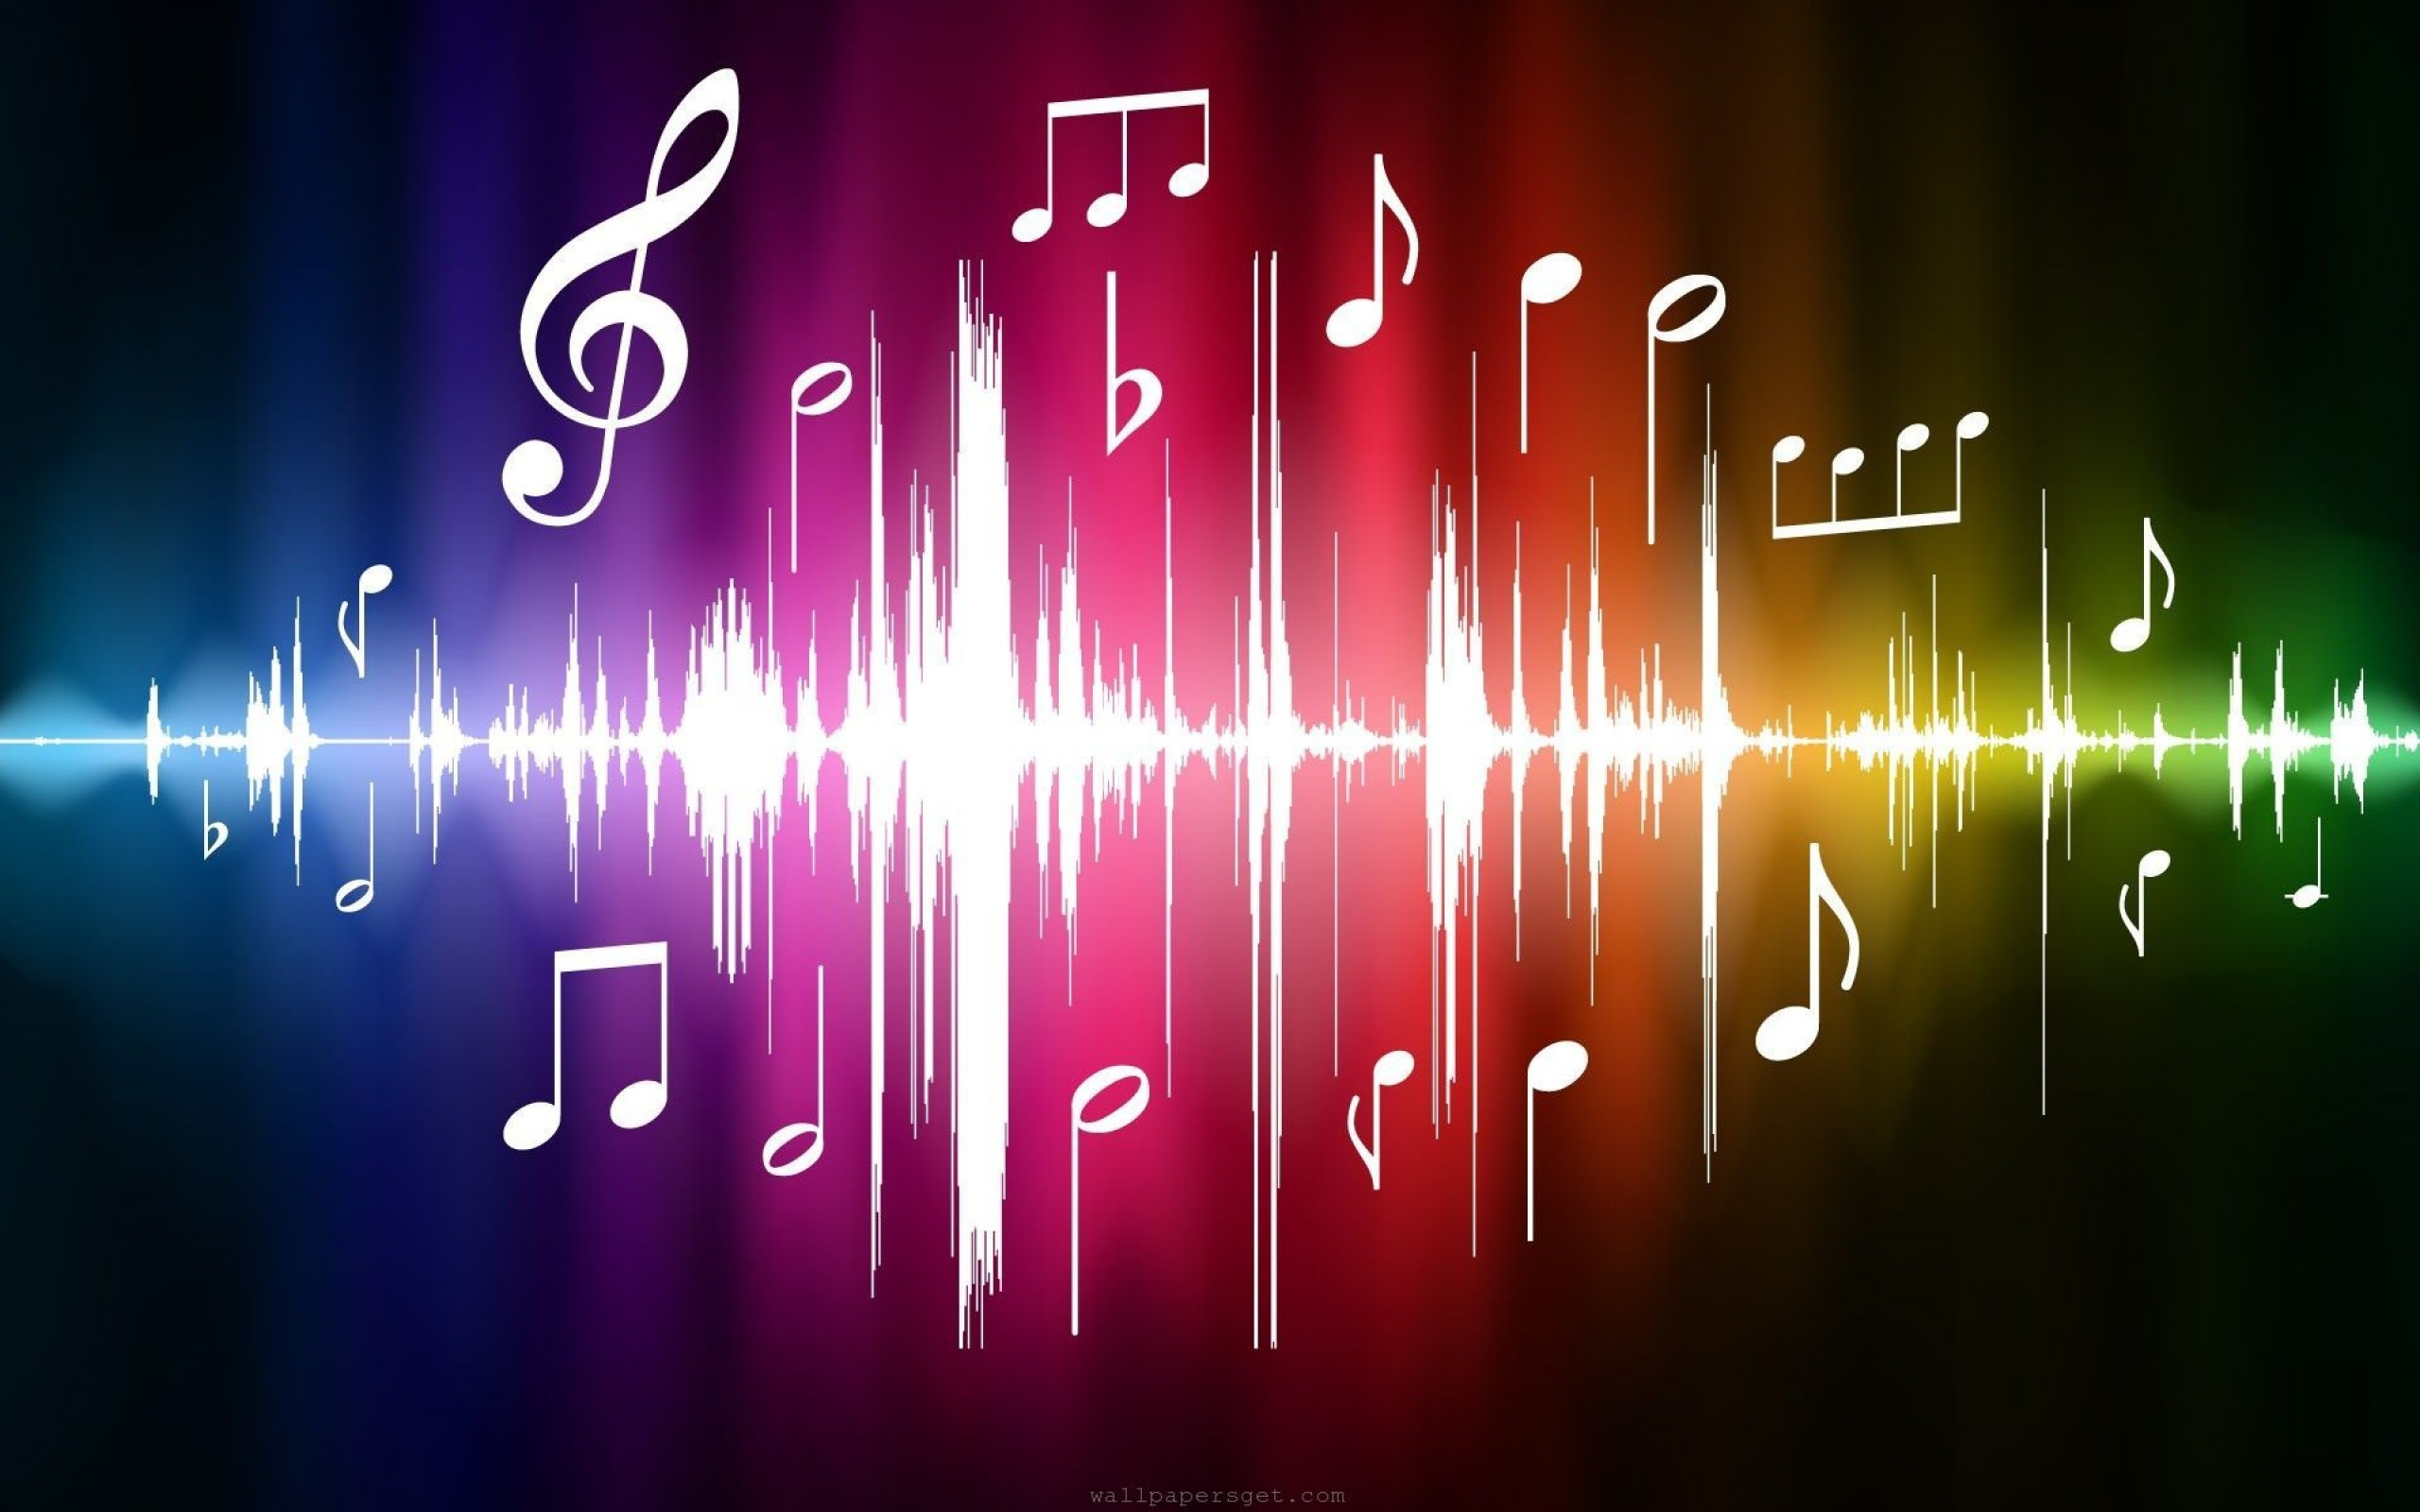 in hd-wallpapers-sound-waves-musical-note-